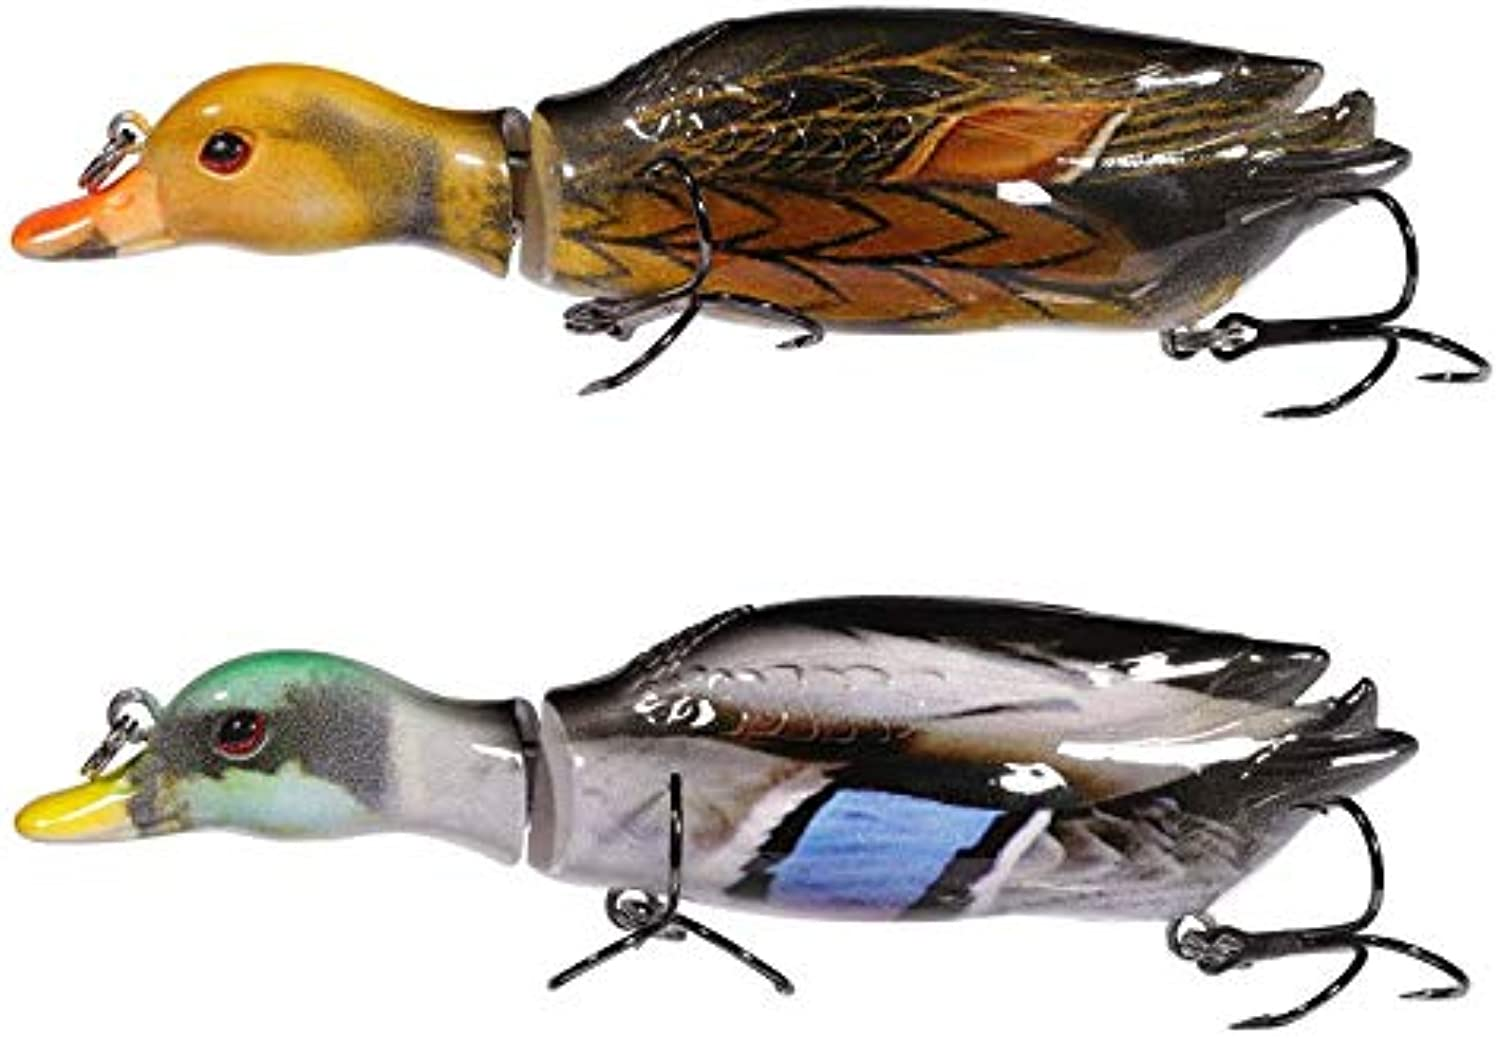 Generic Lurequeen 12cm 26g Floating Duck Fishing Lure Crankbait Jointed Baits Swim baits Topwater Wobbler Fishing Tackle Leurre Isca J2B0204Z